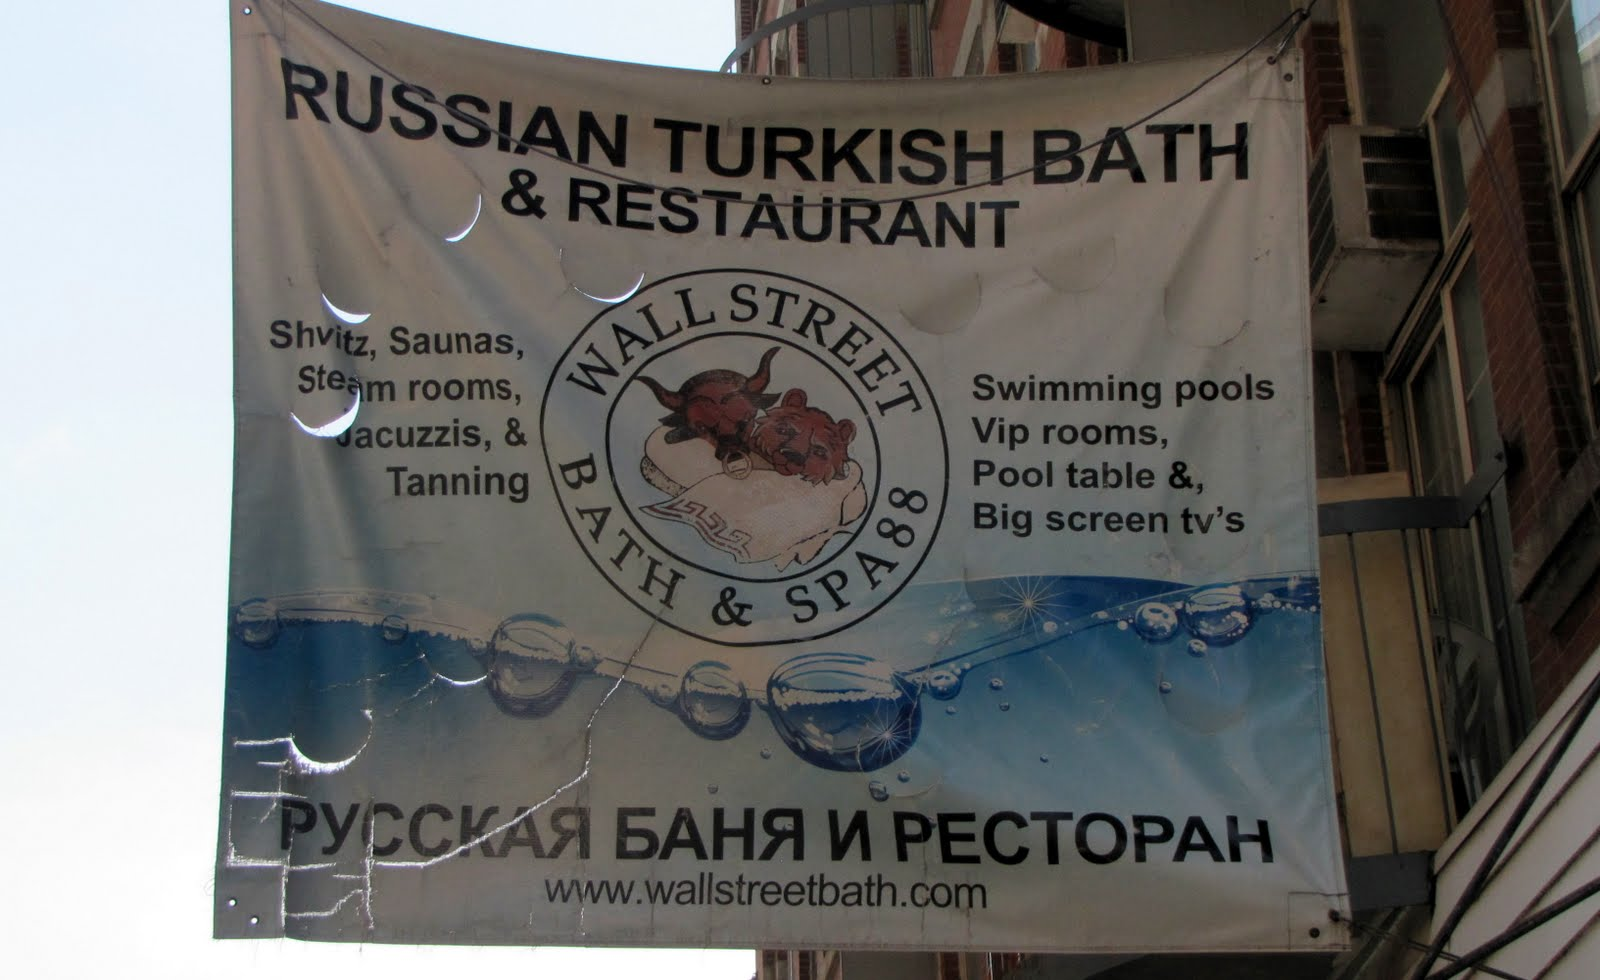 It's an actual bathhouse, but not in that gay way.